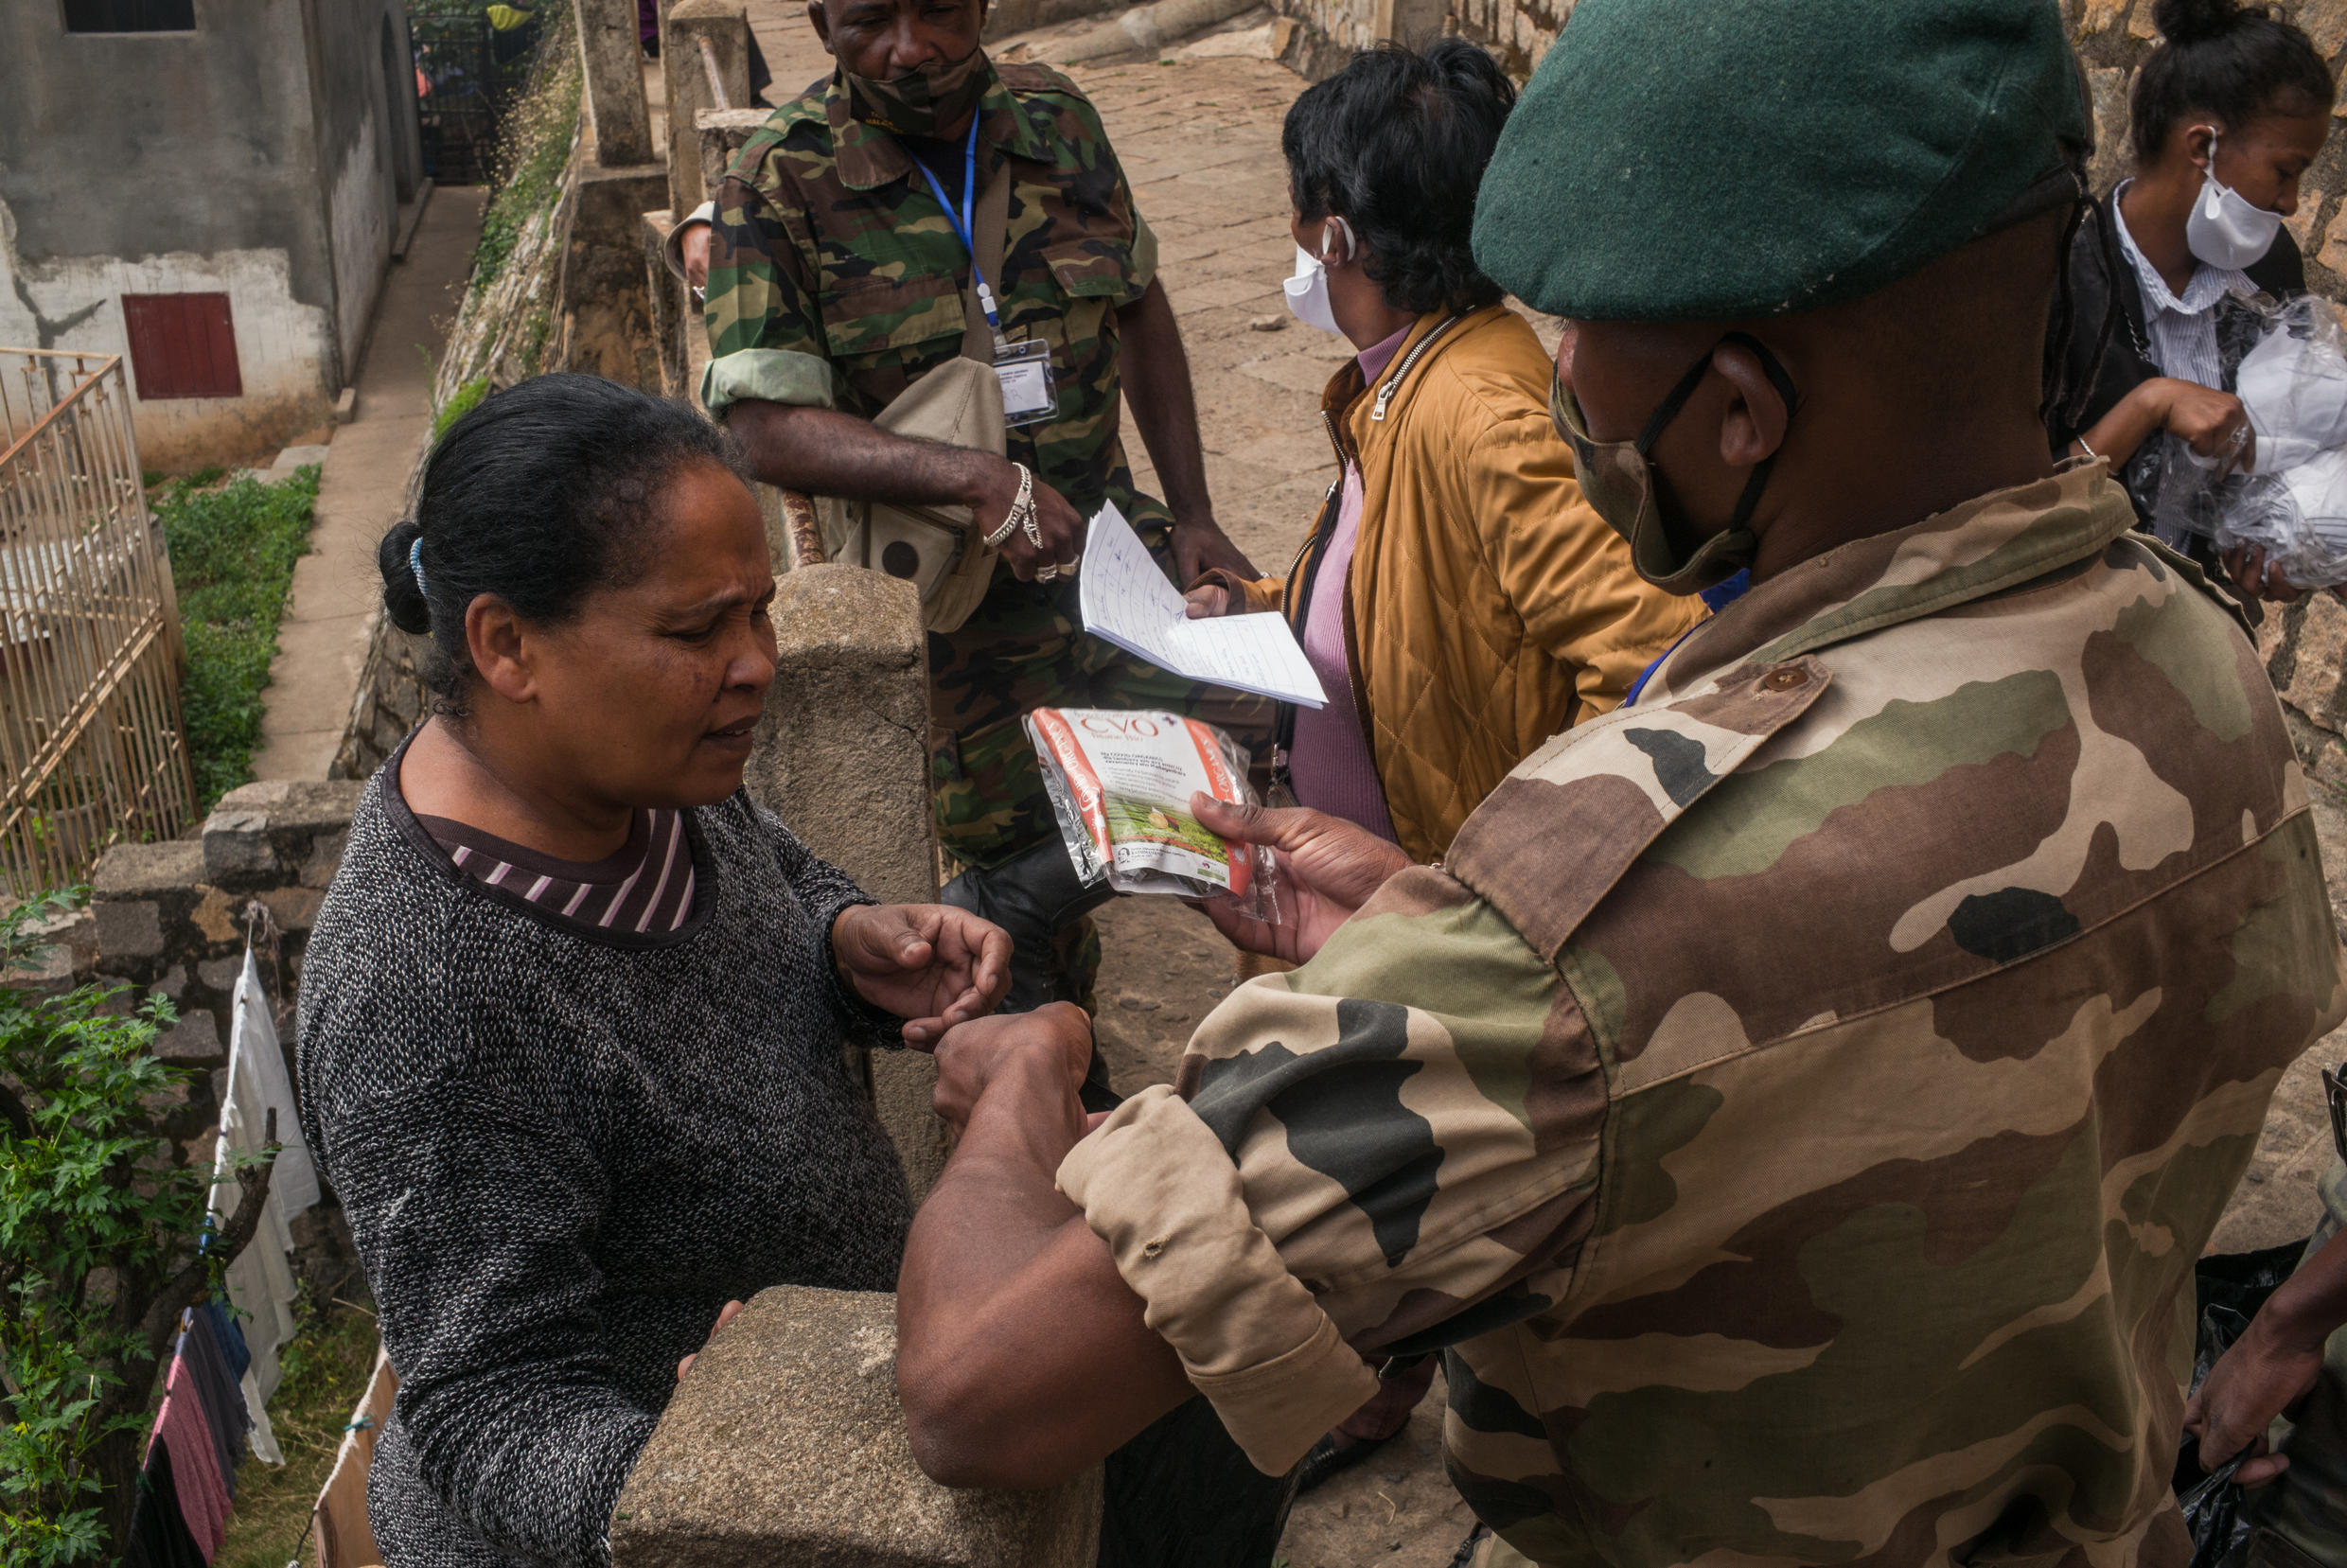 Malagasy soldiers distribute packets of Covid-Organics tea to residents in the Amboasarikely district of Antananarivo, 22 April 2020.